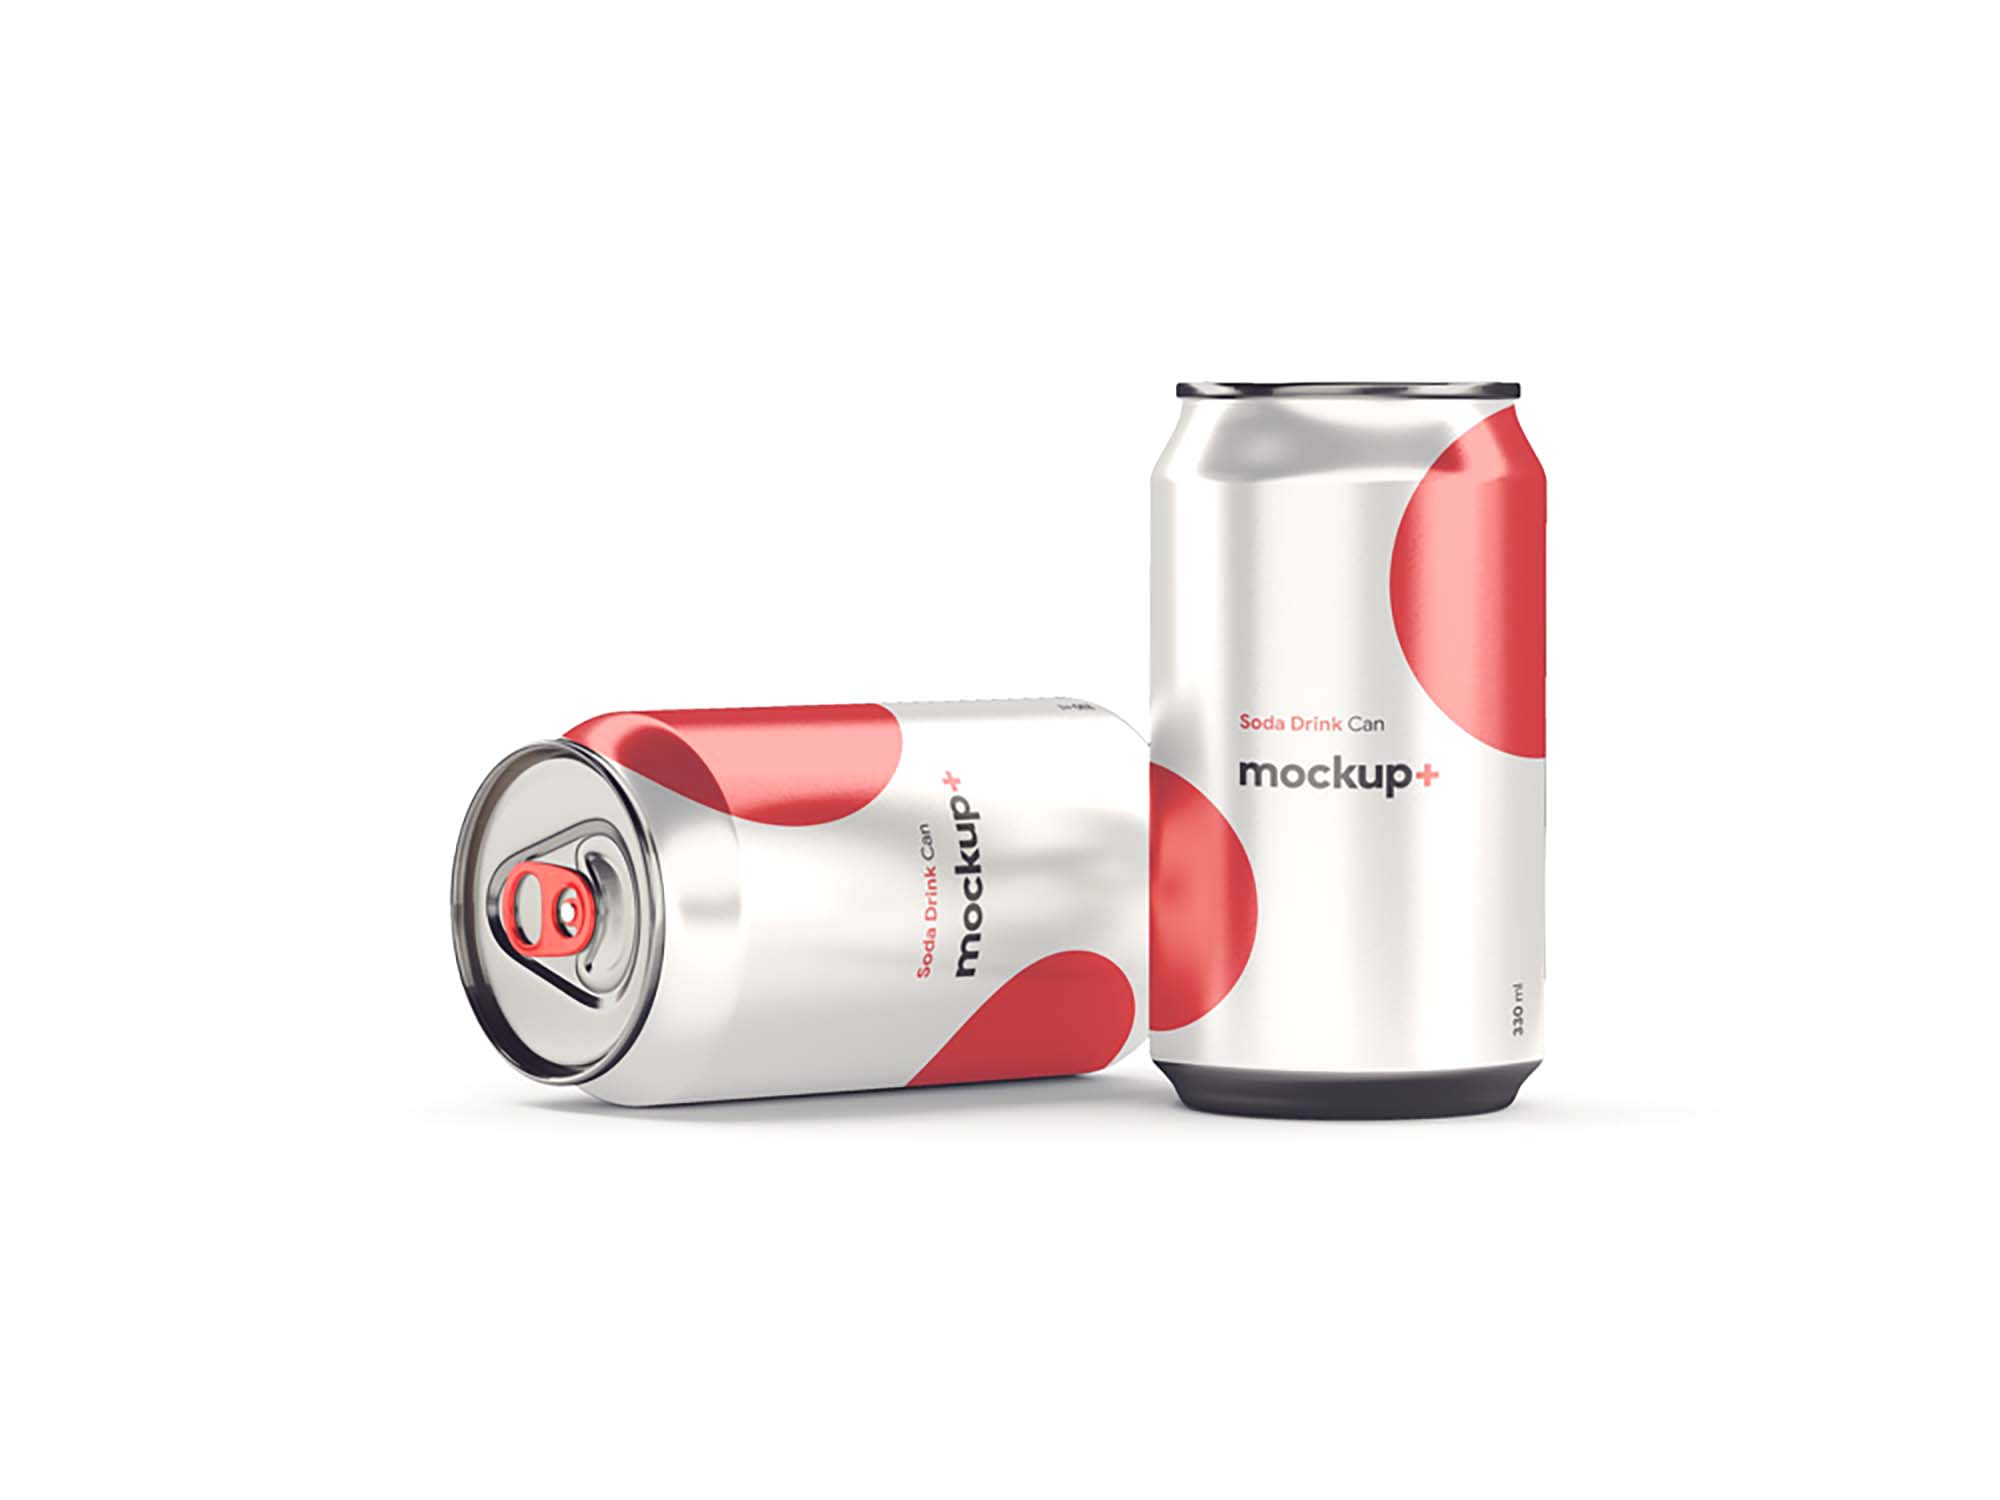 Soda Drink Can Mockup 2